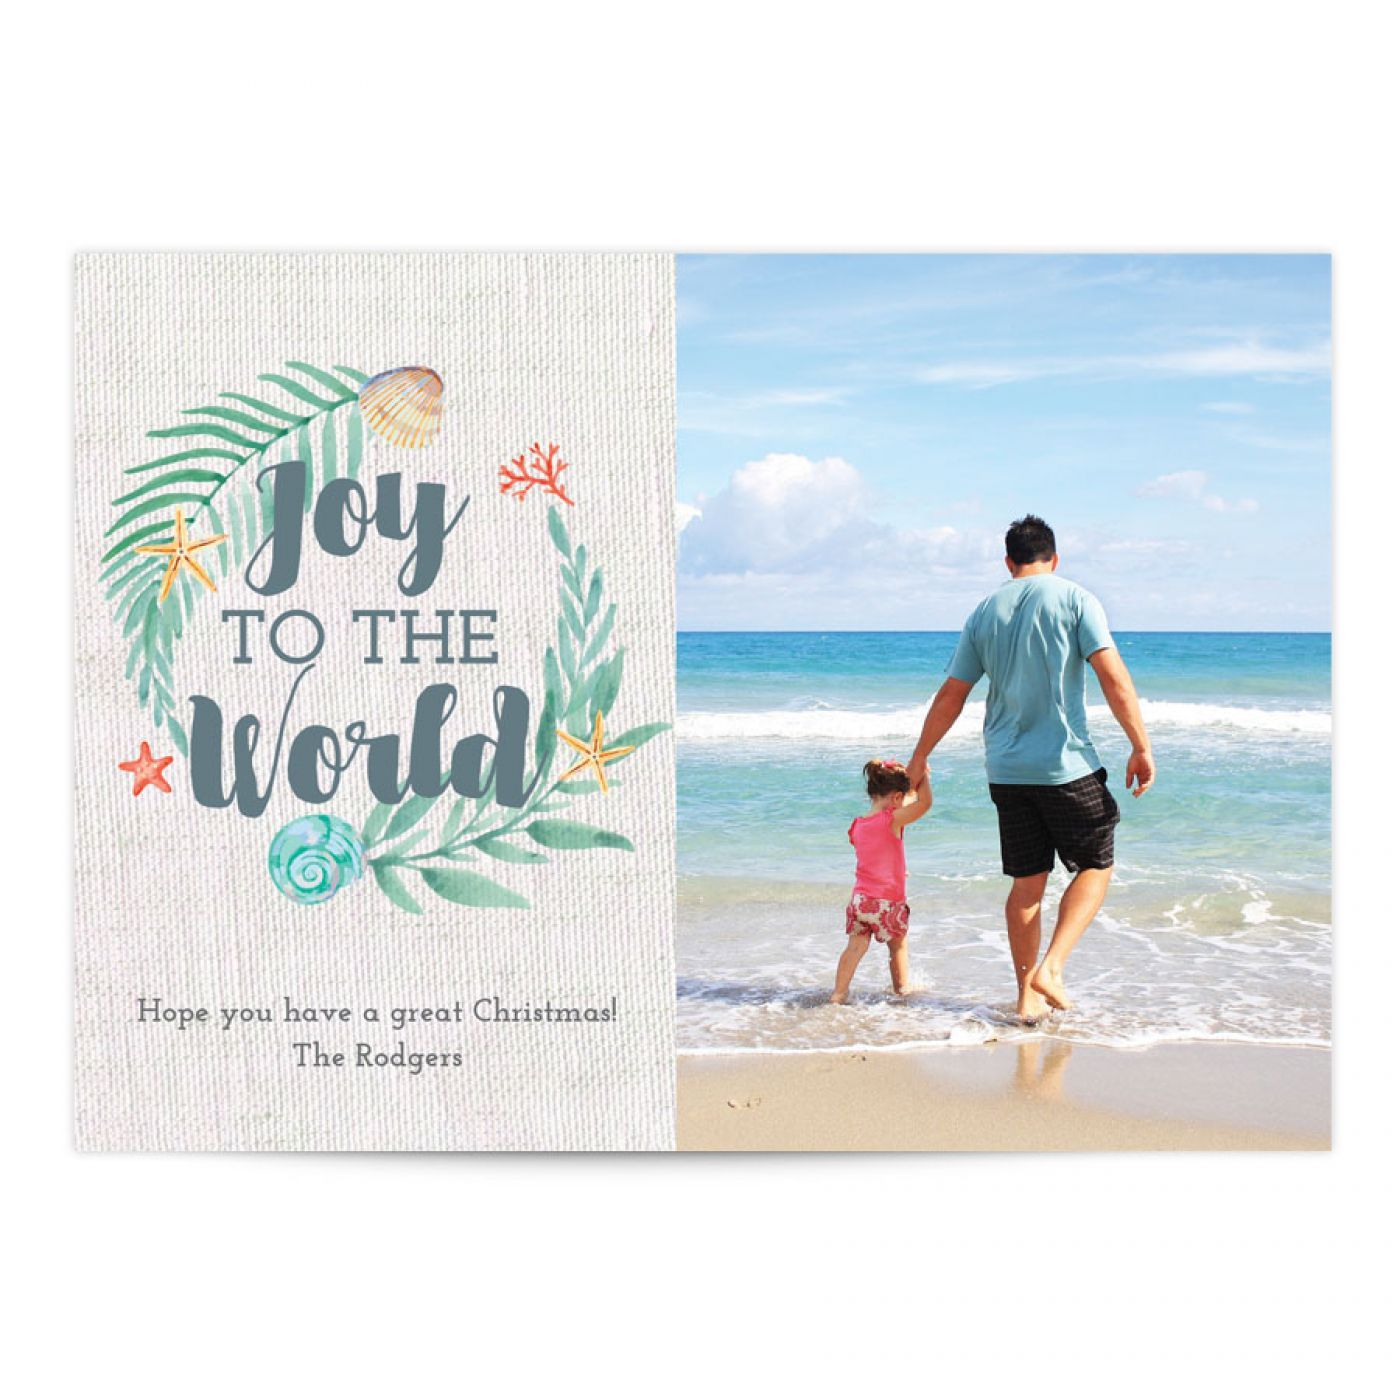 Tropical joy holiday holiday photo greeting card photo greeting tropical joy holiday holiday photo greeting card kristyandbryce Images